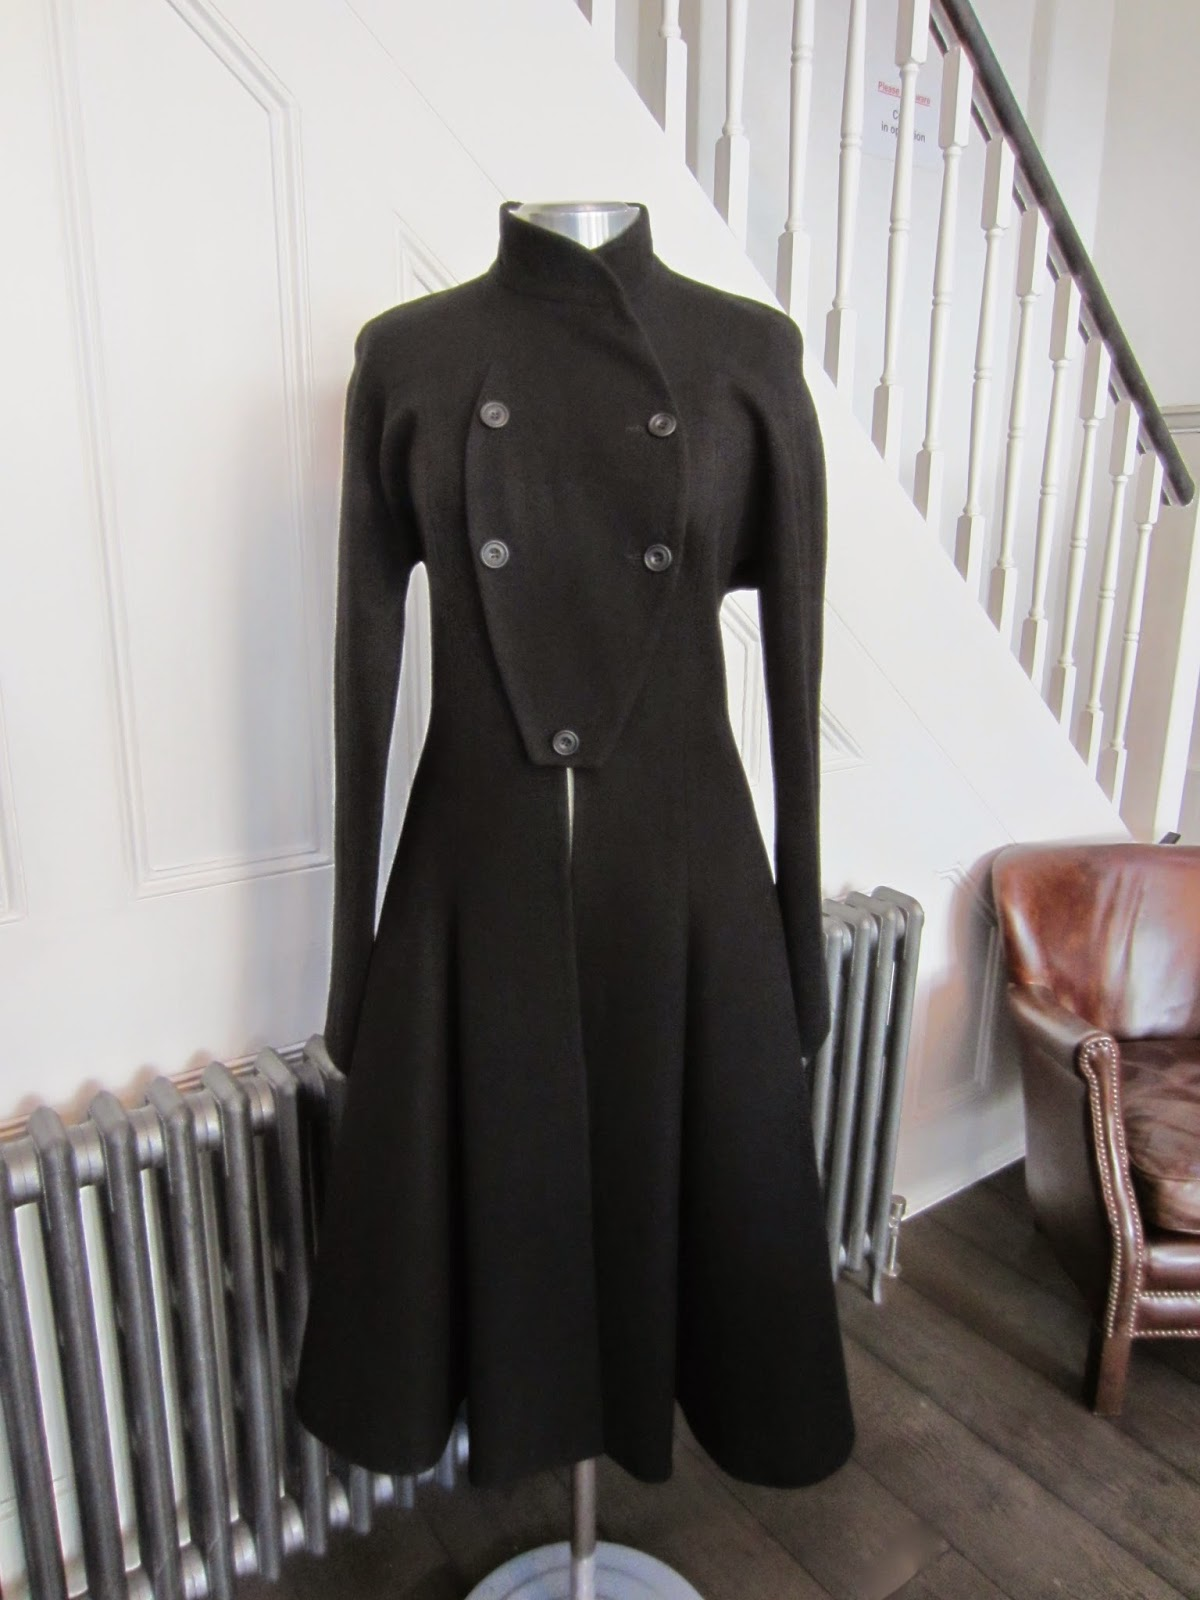 Jasper Conran Black Dress Coat